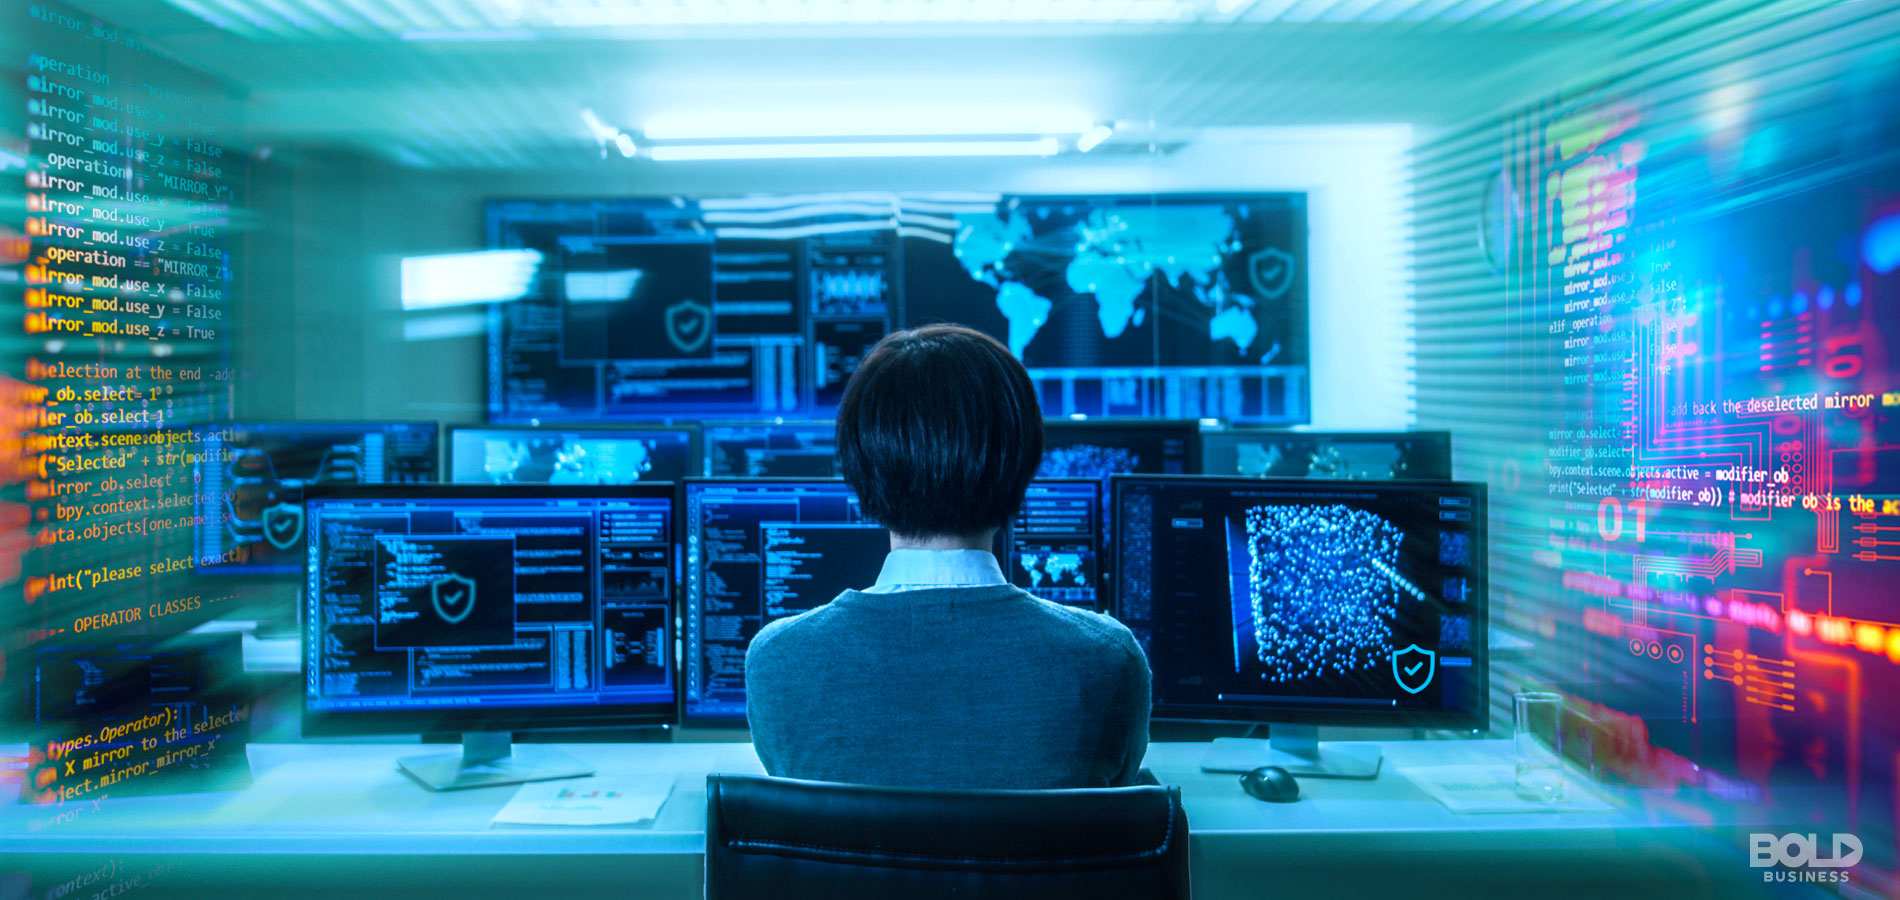 A photo of a woman's back while she focuses on multiple monitor screens in front of her, being one of the leaders in cybersecurity